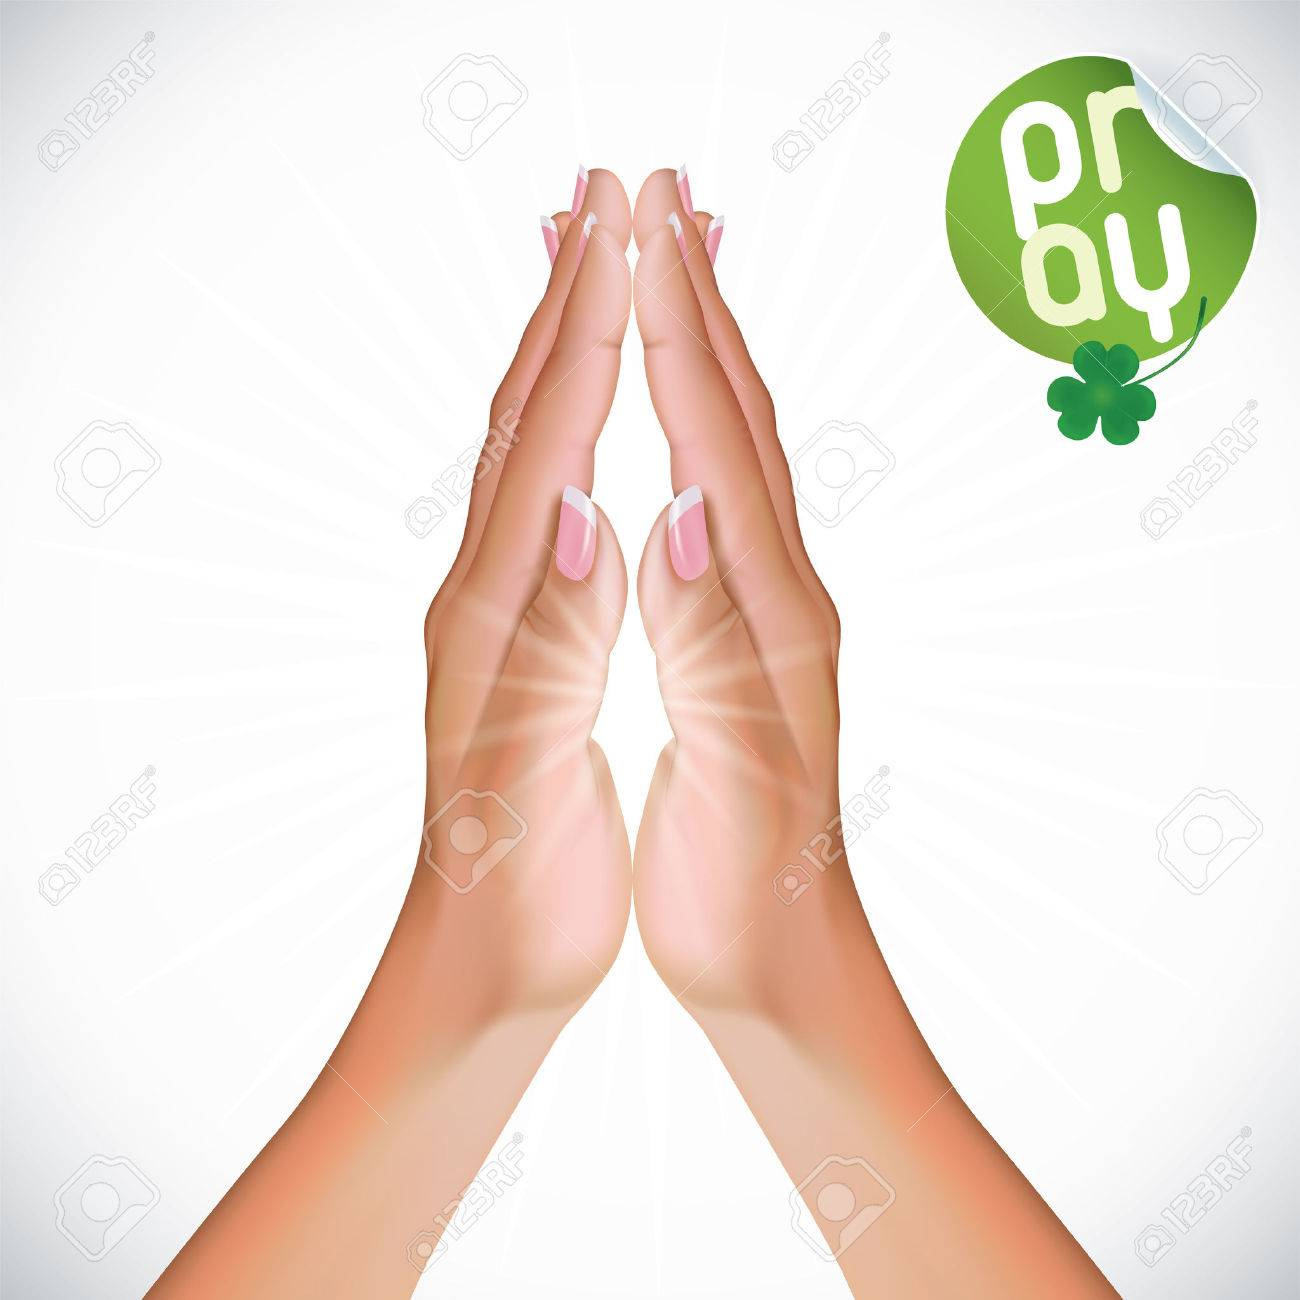 Vector Female Praying Hands Illustration.